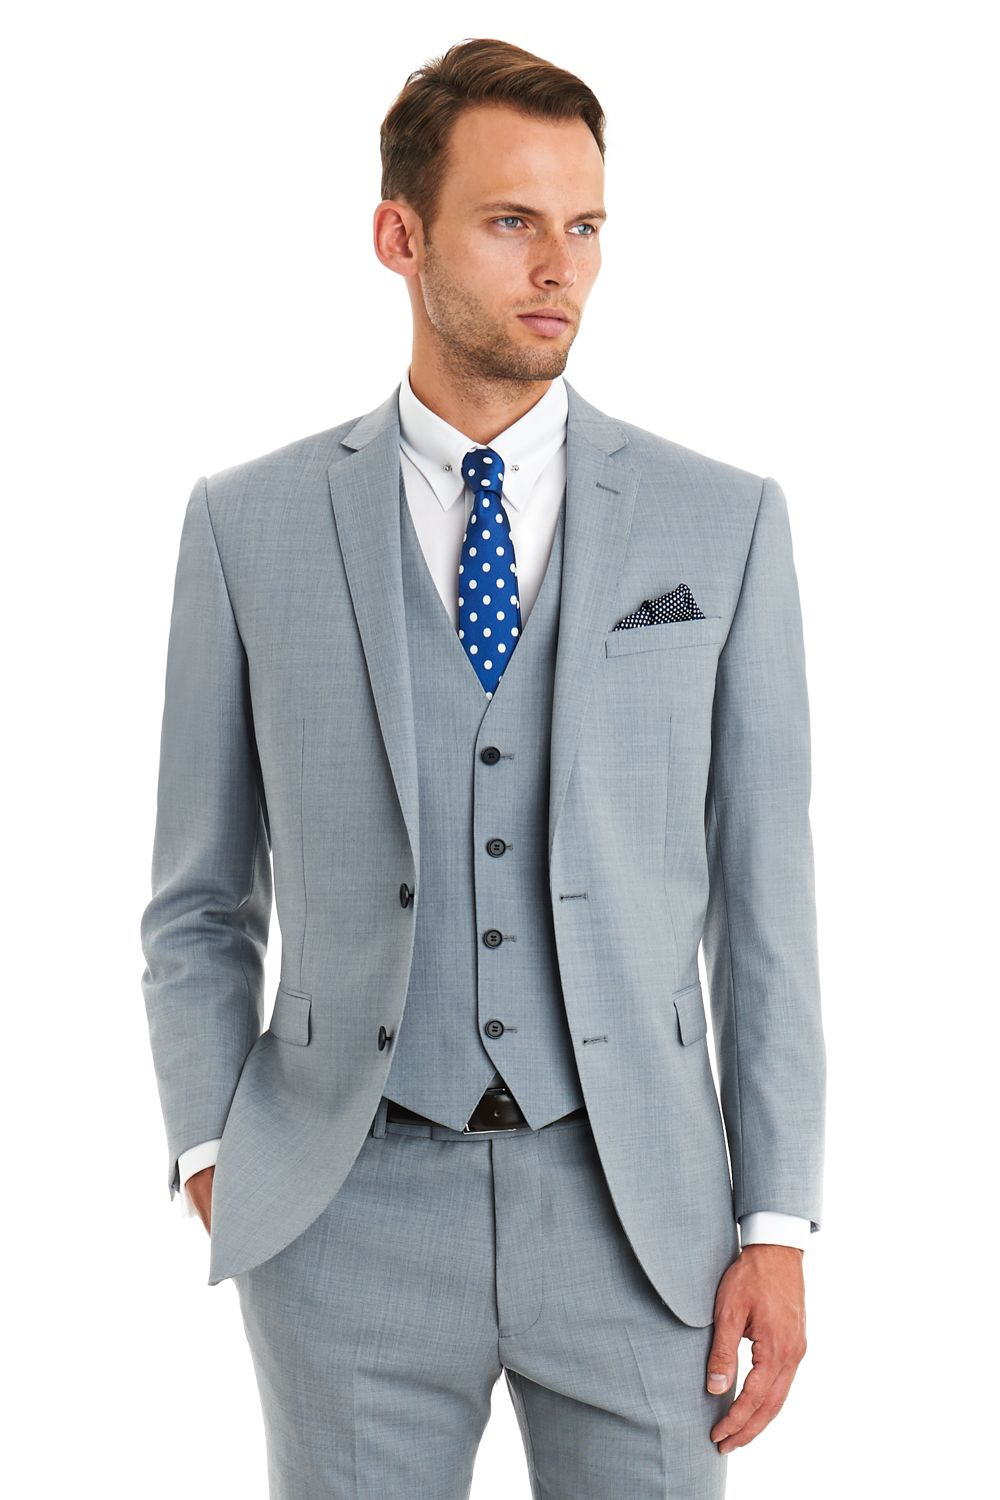 This Blazer tailored fit blue duck egg suit is single breasted. It ...